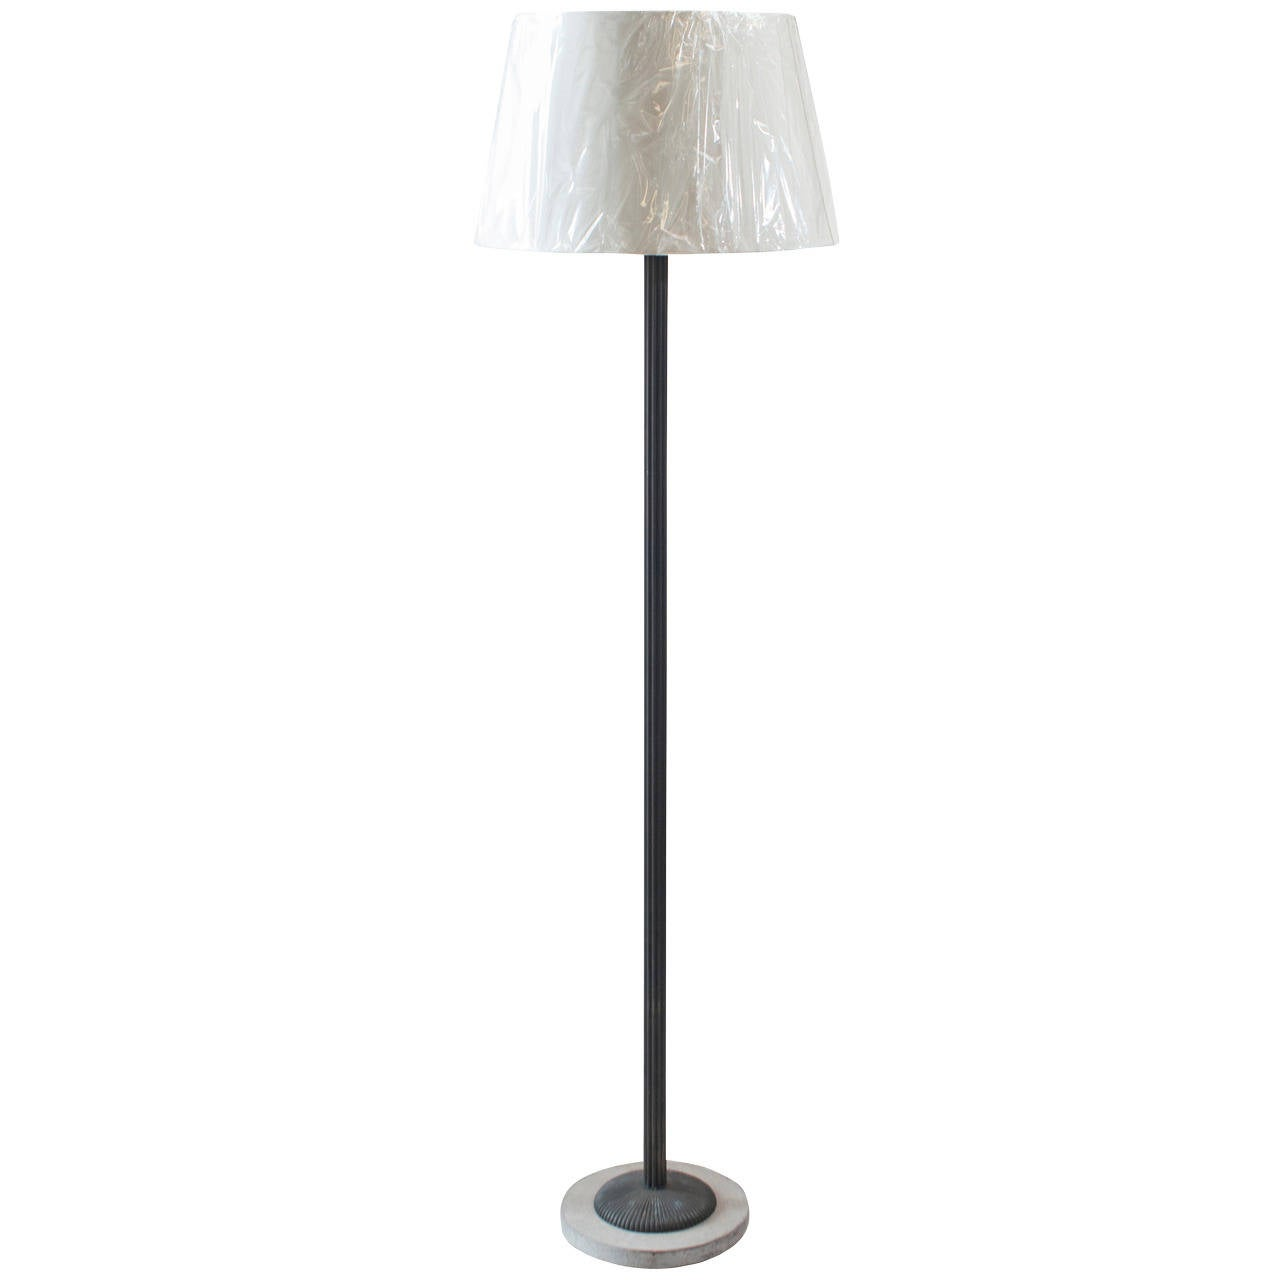 Black Metal Floor Lamp With Marble Base For Sale At 1stdibs